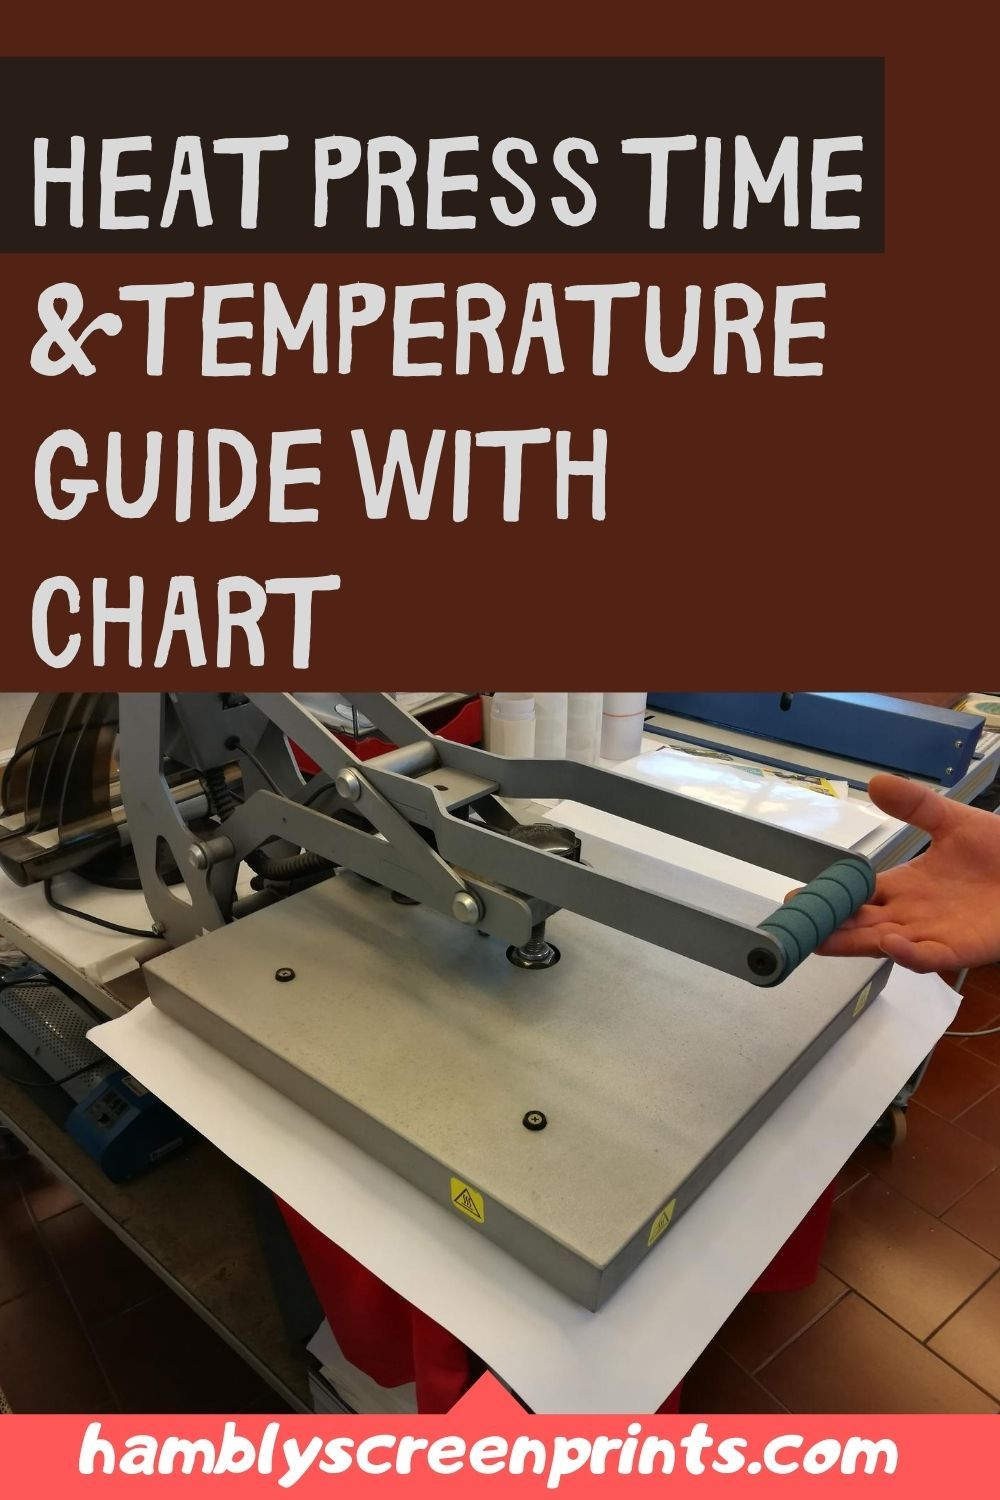 Heat press time and temperature 2020 guide with chart in